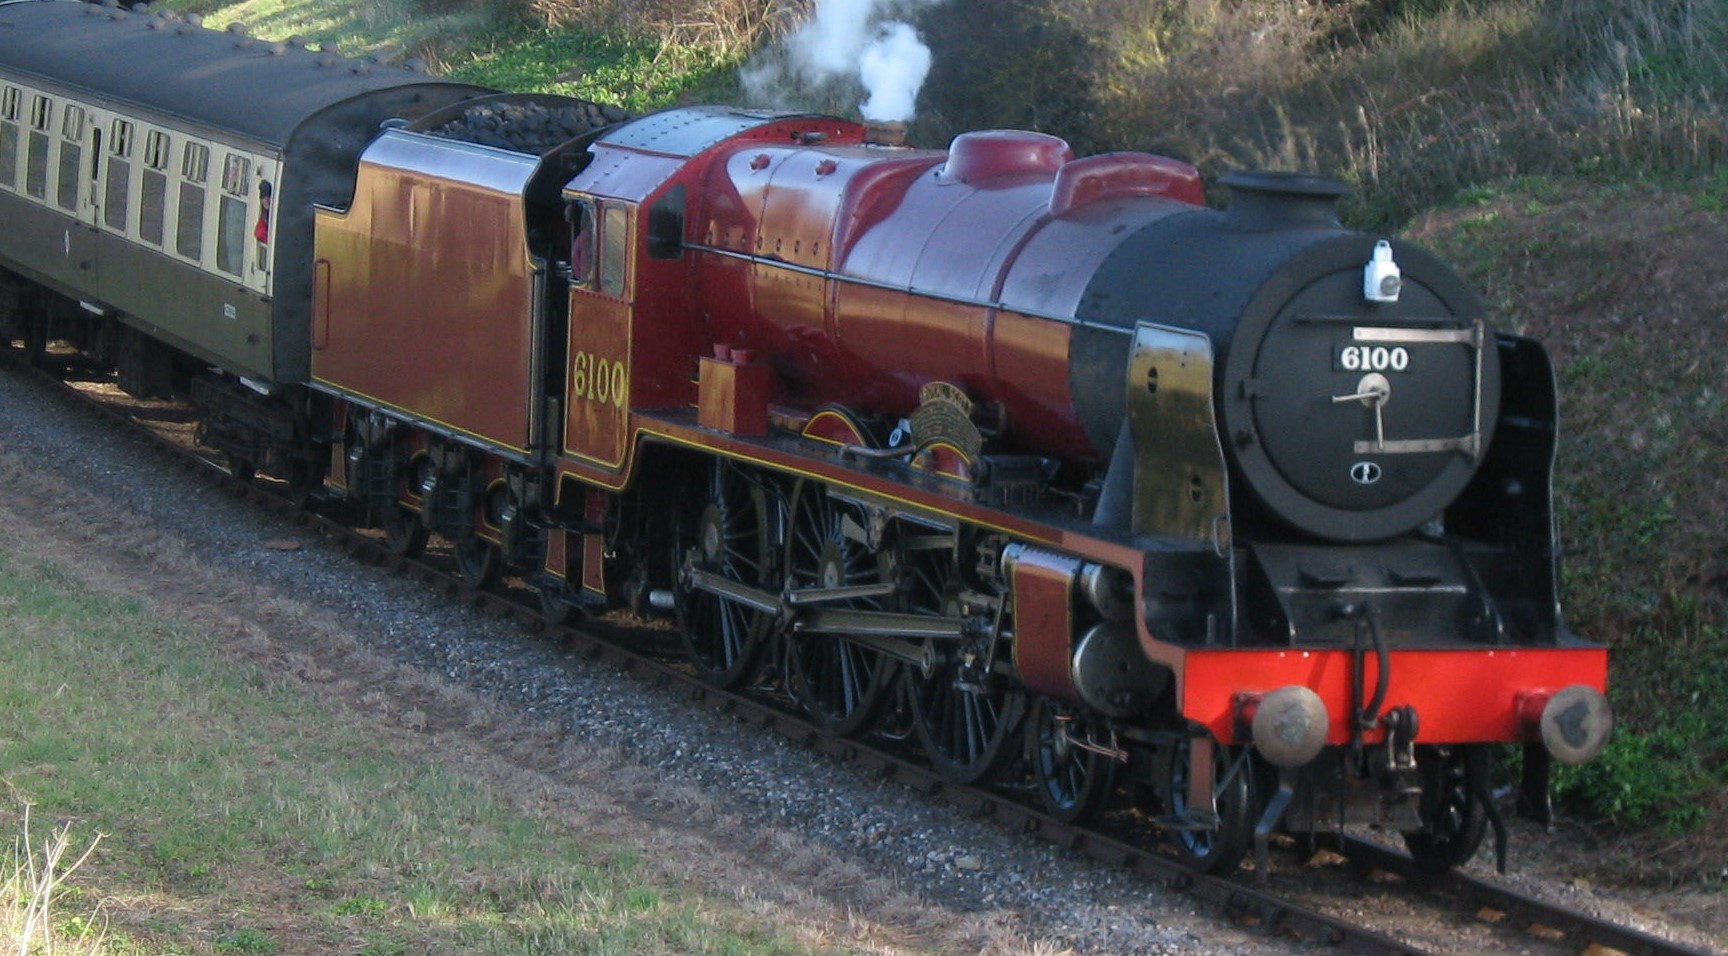 6100 'Royal Scot' at Watchet on the West Somerset Railway in March 2009. ©Andrew Bone